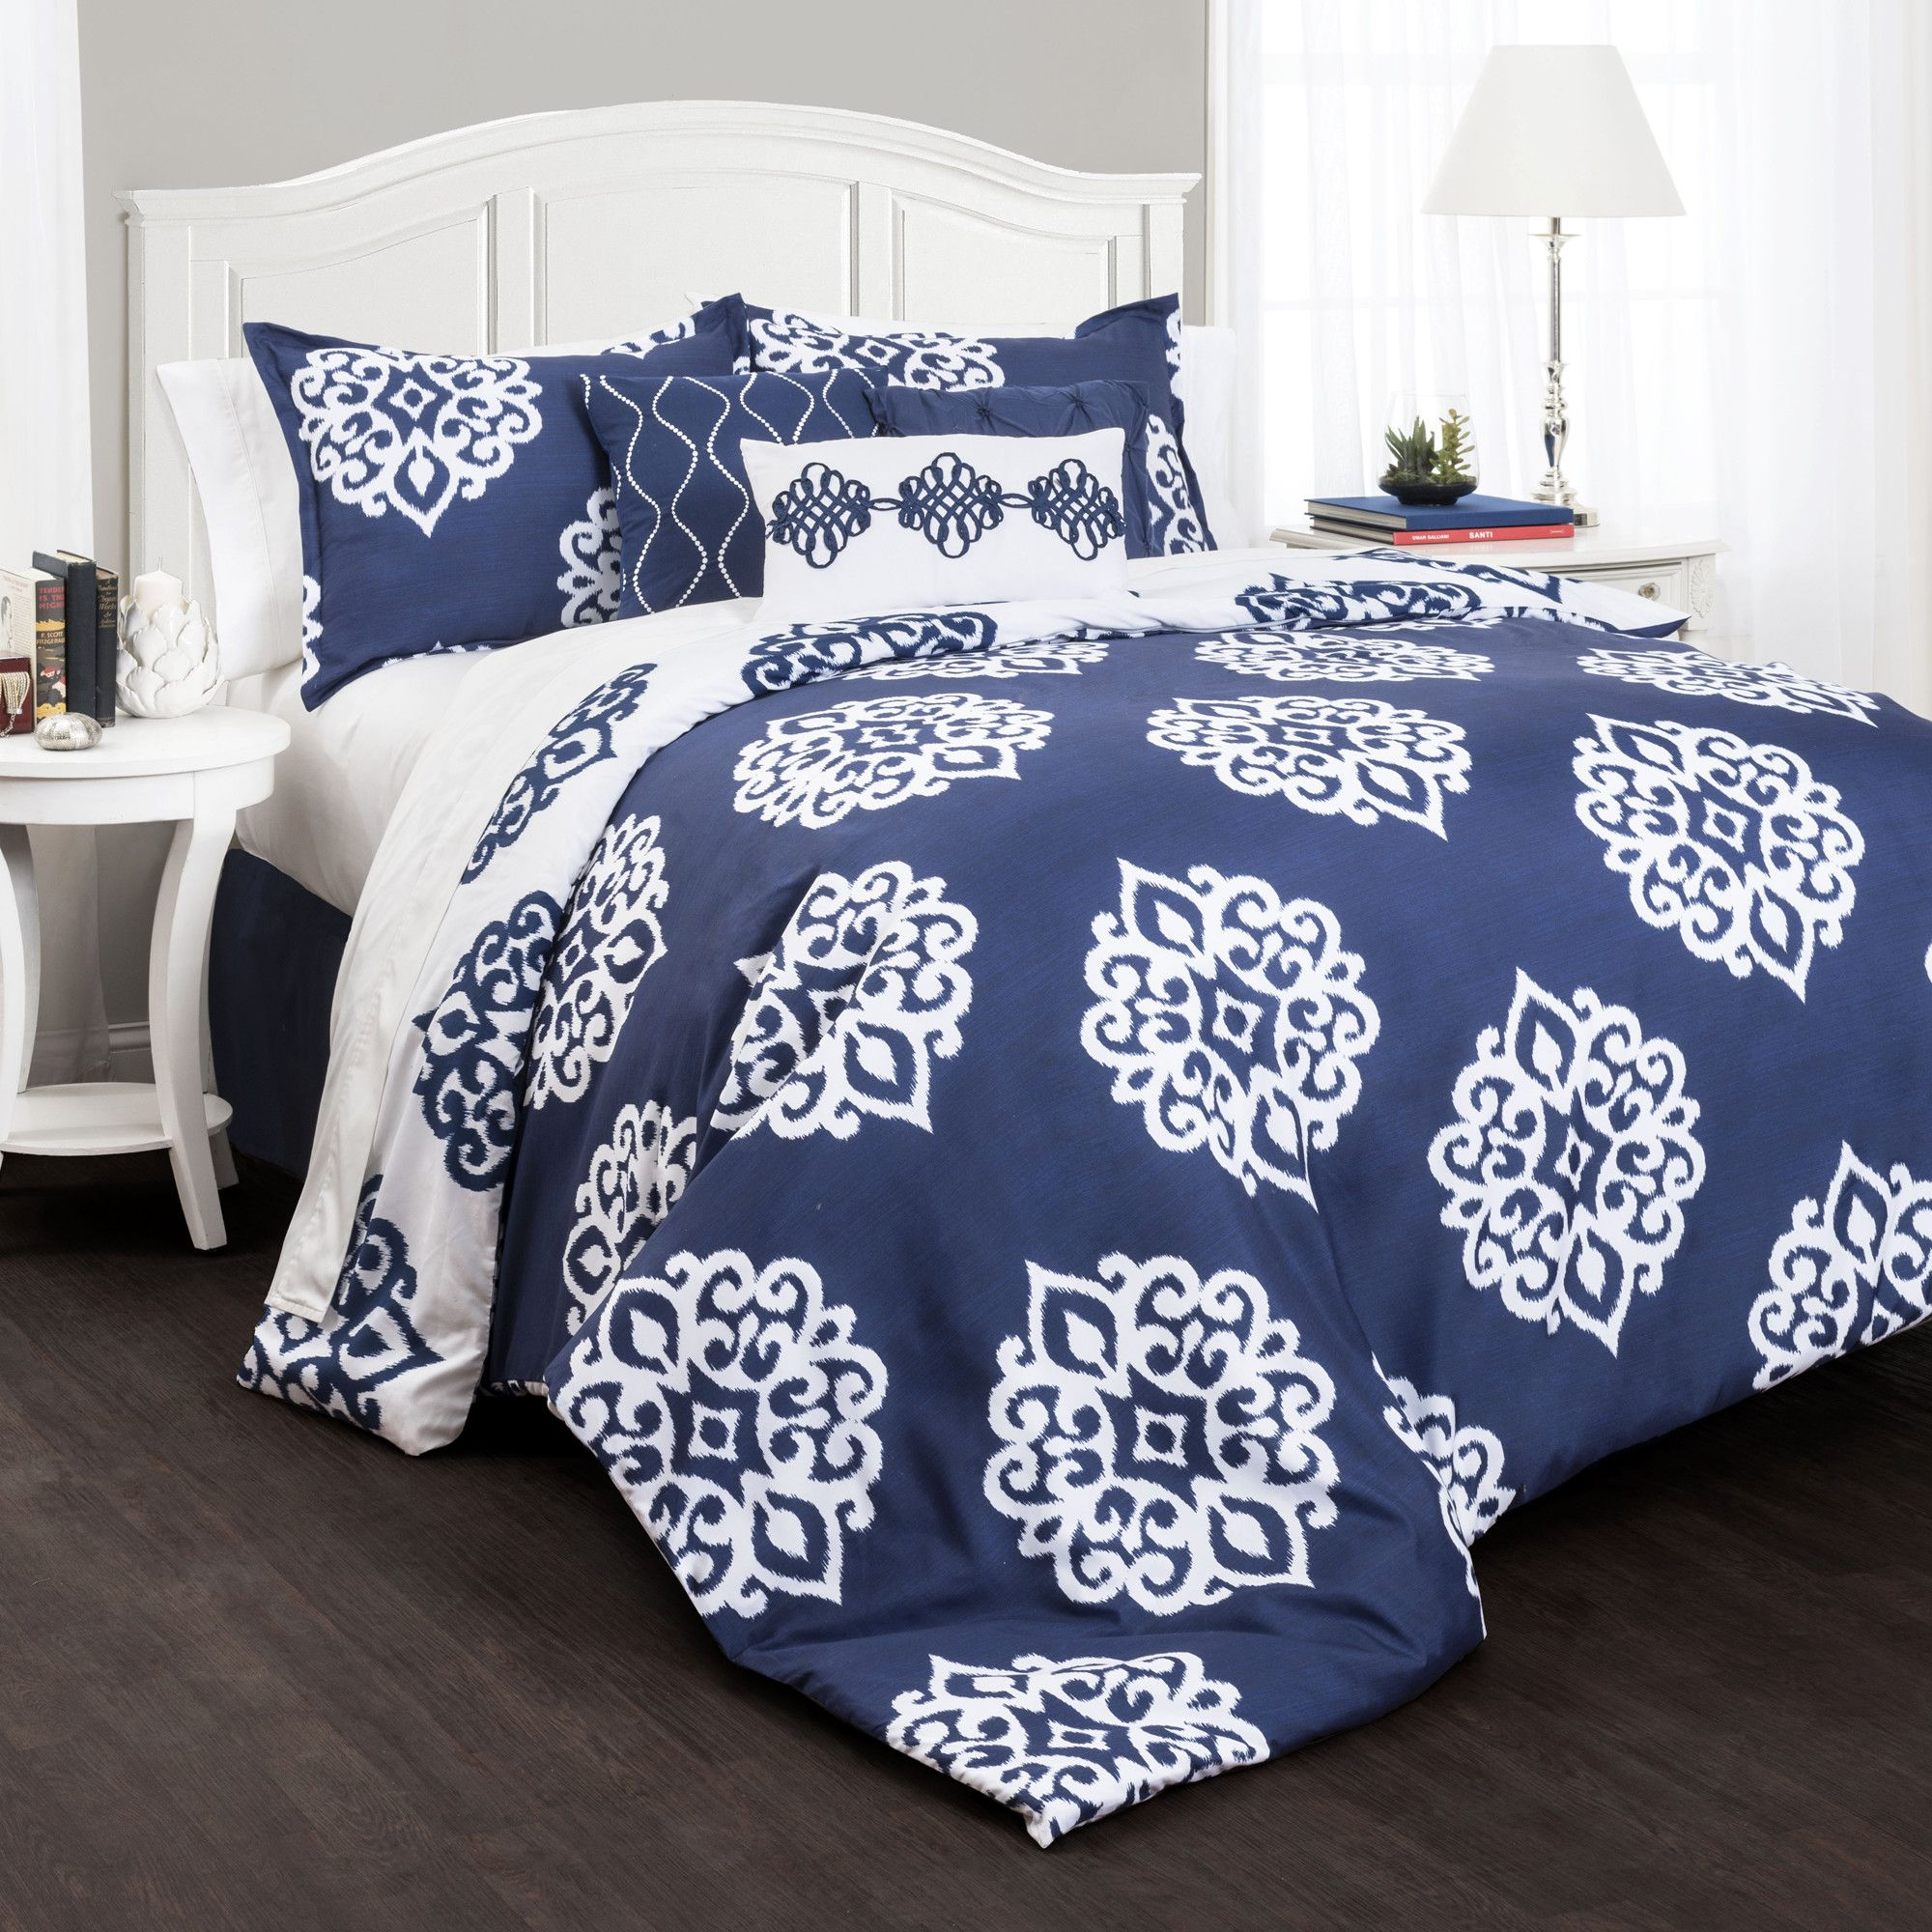 Navy Blue White Palampore 8p Floral Comforter Set Queen Paisley French Country Blue Comforter Sets Queen Comforter Sets Comforter Sets